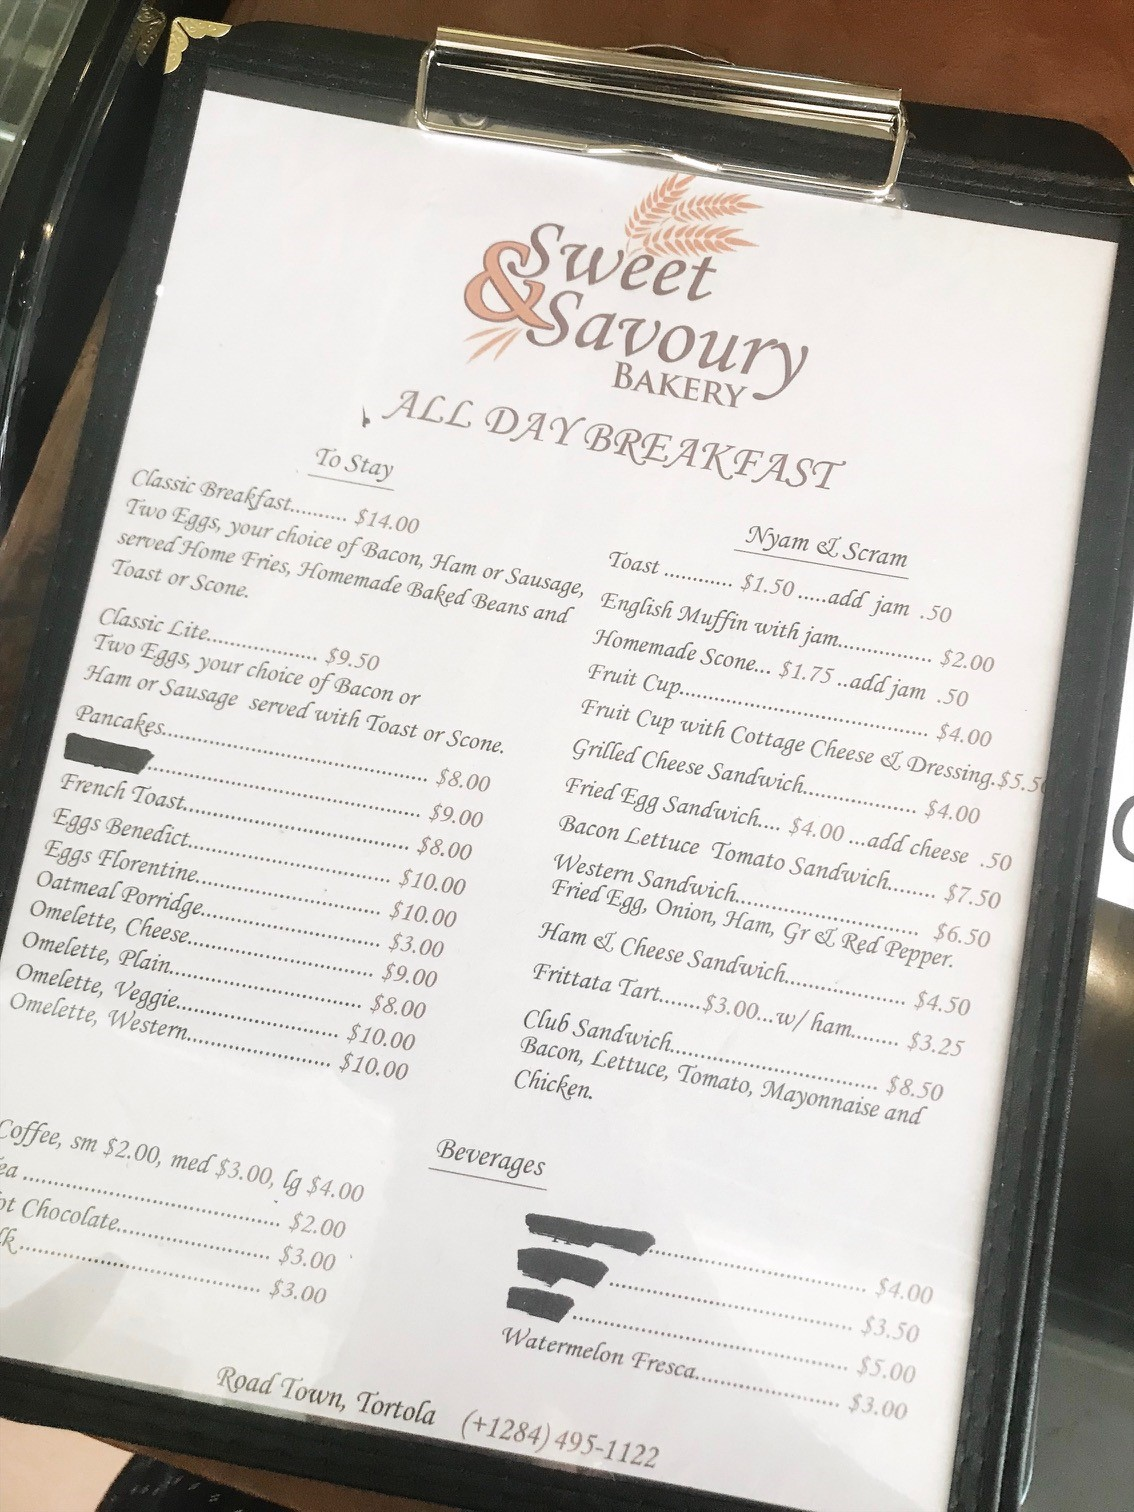 Where to go in Road Town - Sweet n Savoury Bakery